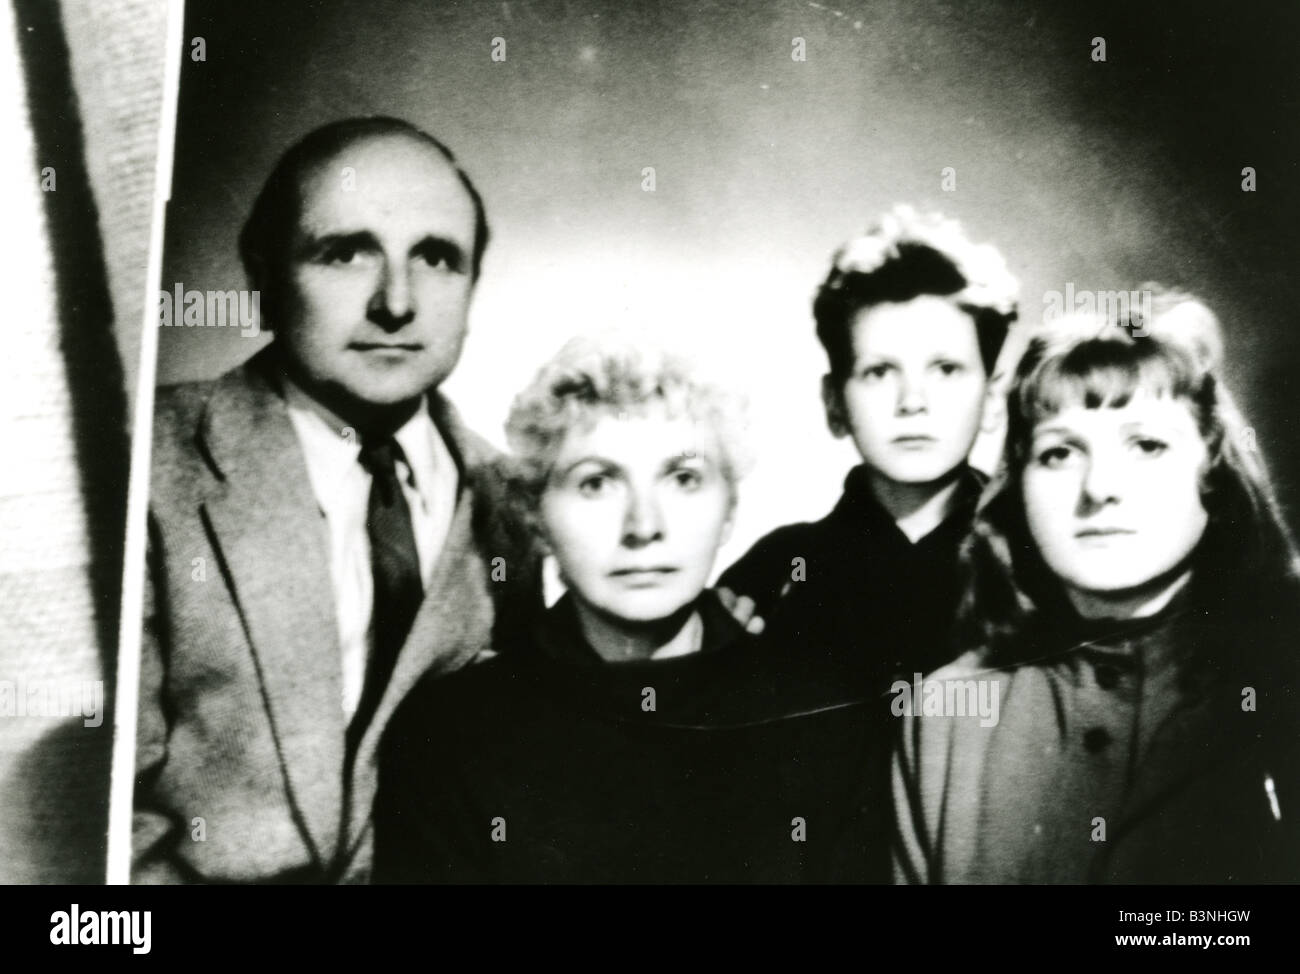 KLAUS BARBIE Nazi war criminal who headed operations against the French resistance in World War Two sen post war - Stock Image